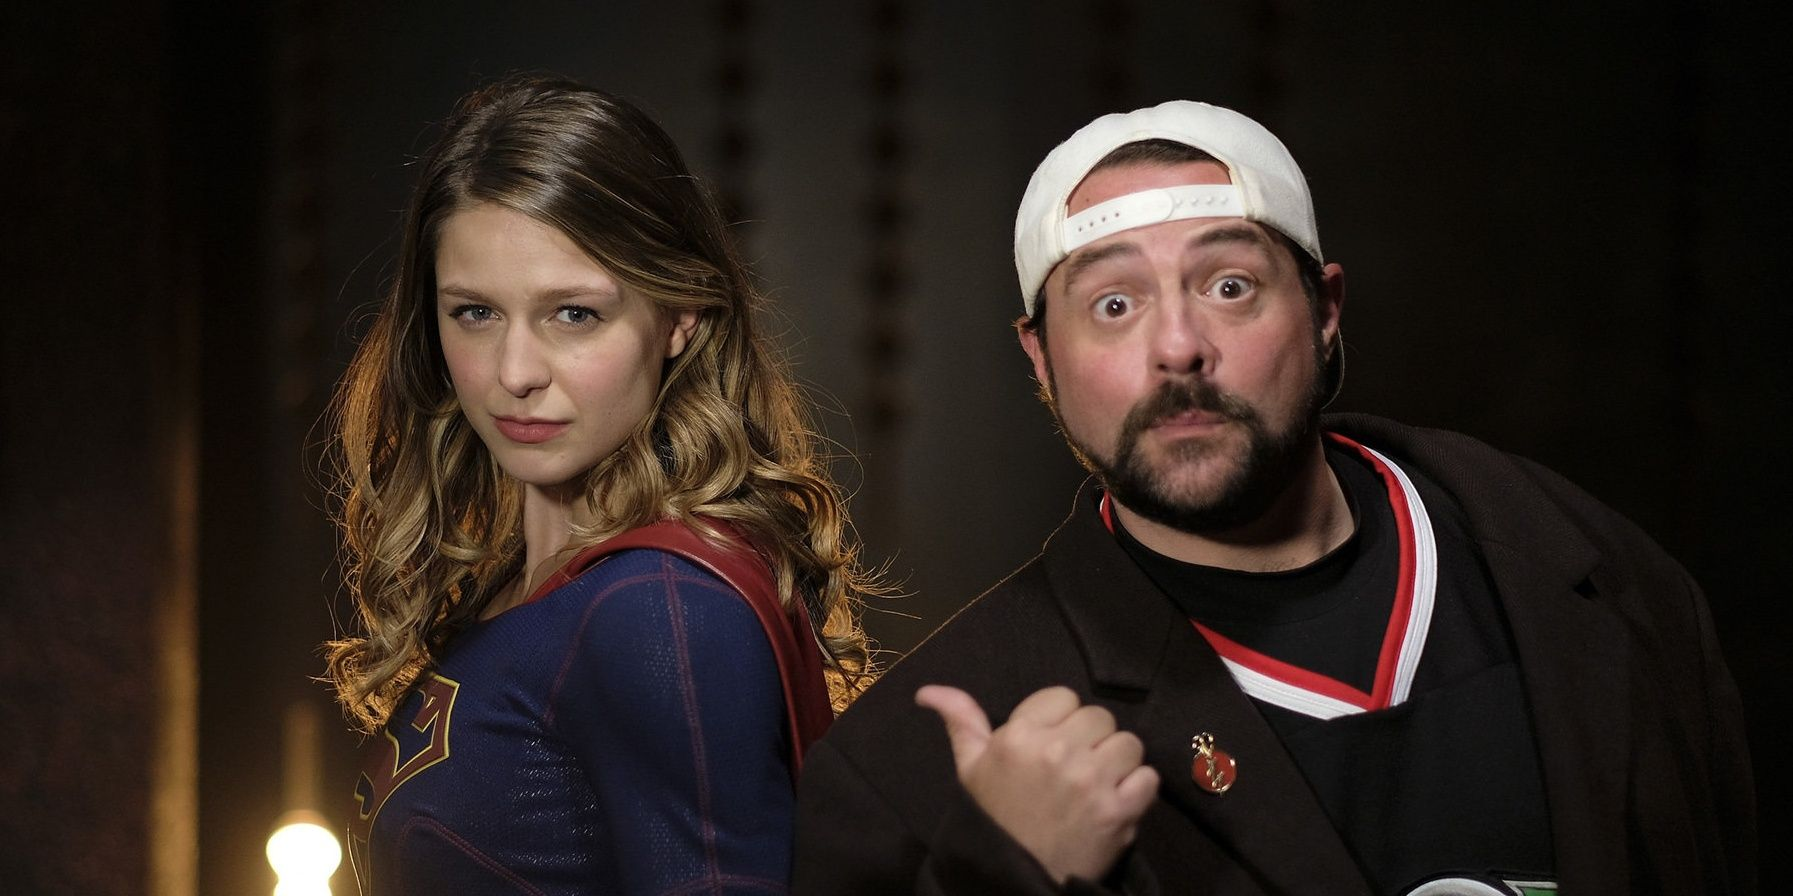 Kevin Smith Wants to Direct Arrow, But Can't | CBR